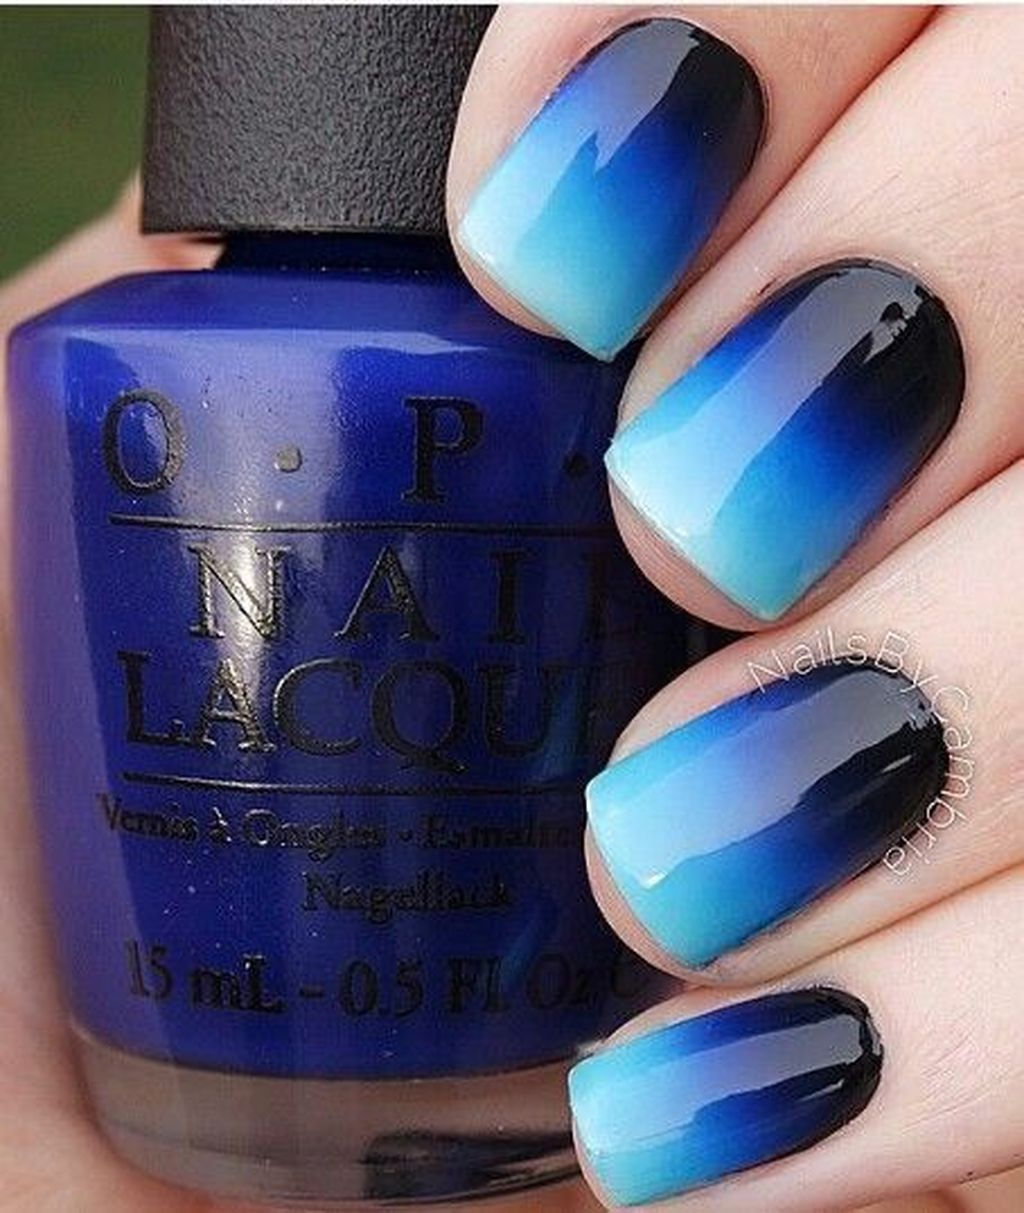 40 Gorgeous Nail Designs Ideas In Summer For Women In 2020 Ombre Nail Designs Blue Ombre Nails Nail Art Ombre